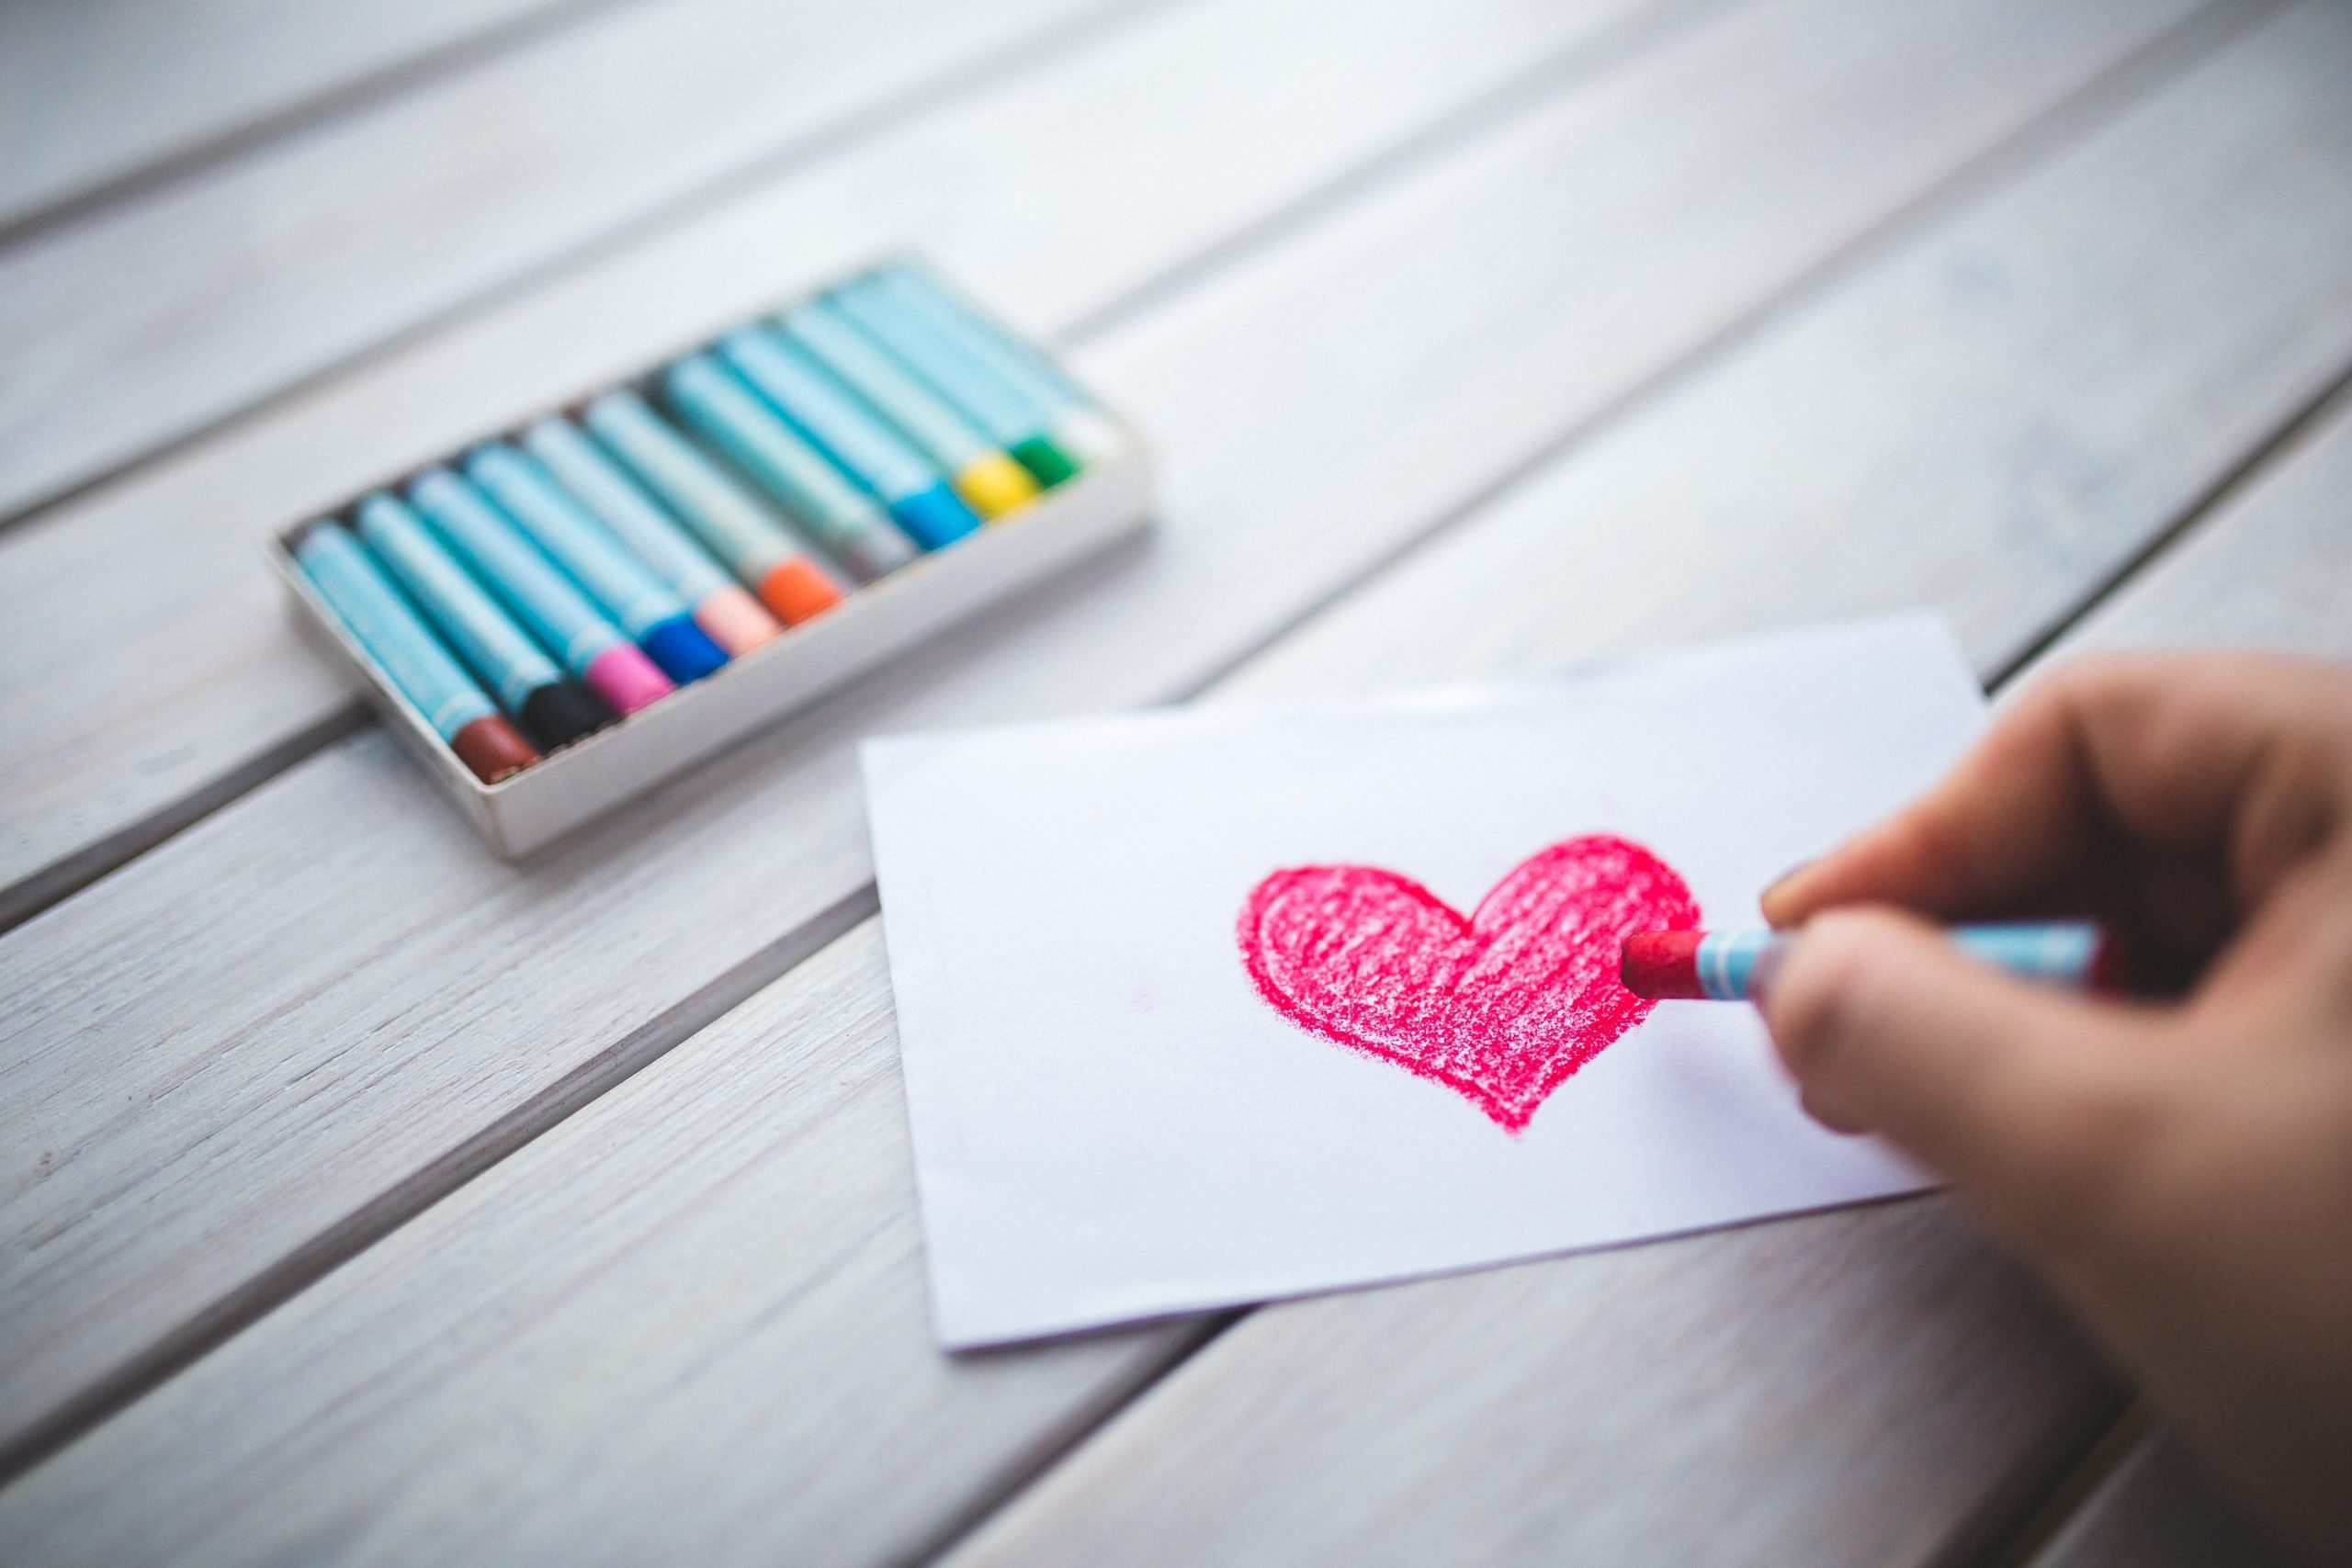 The Daily Reminder - Day 5: Kids + Love letters - Make Words Matter